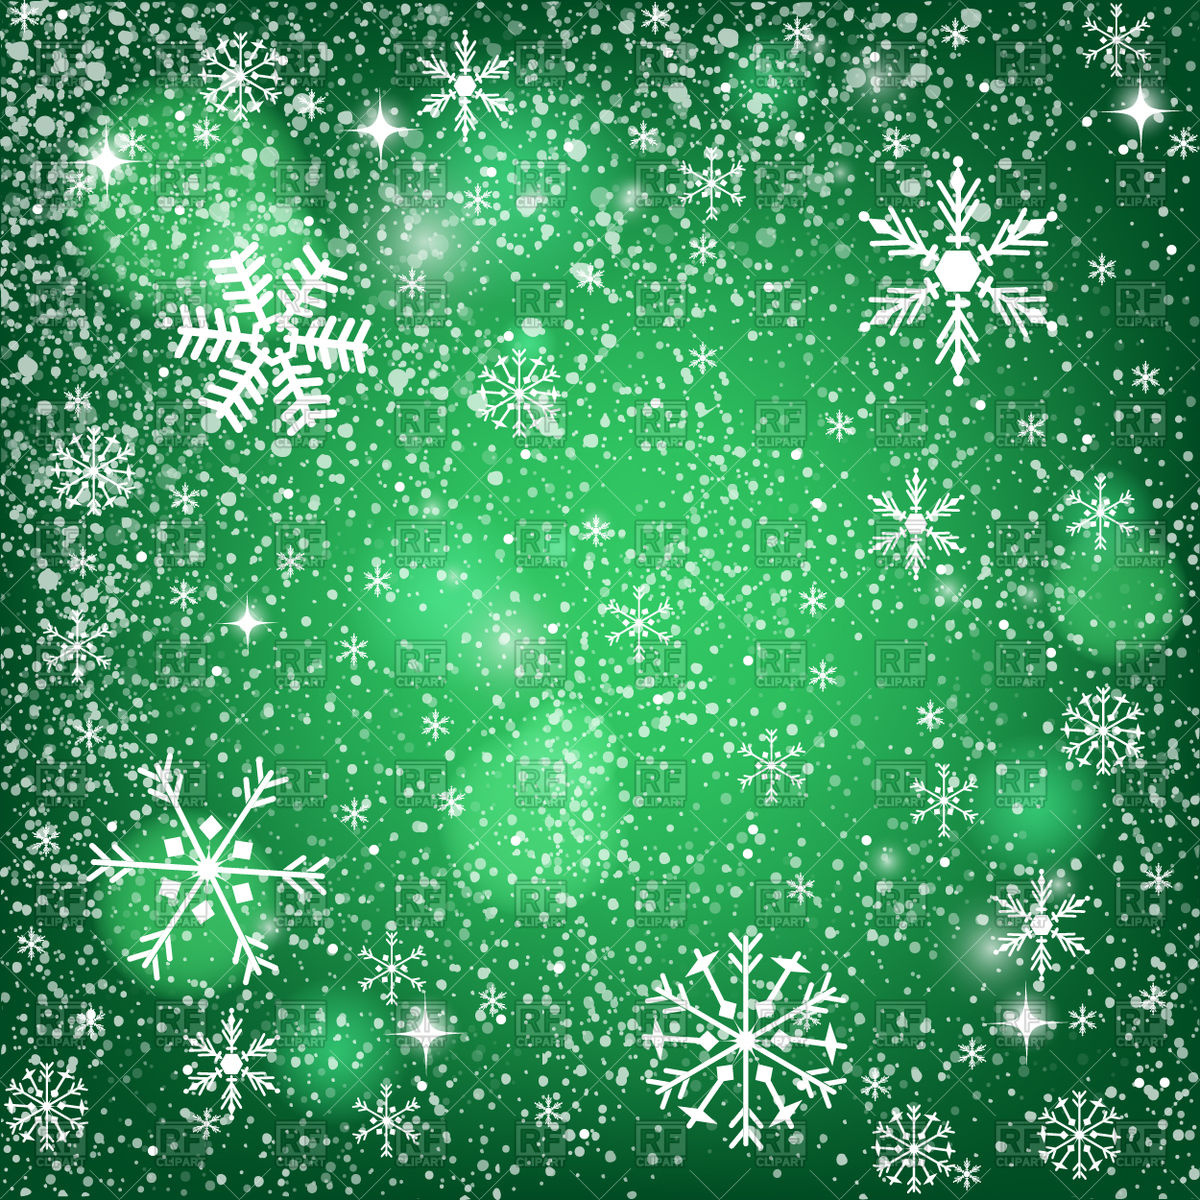 Abstract green Christmas background  snowy pattern with snowflakes 1200x1200